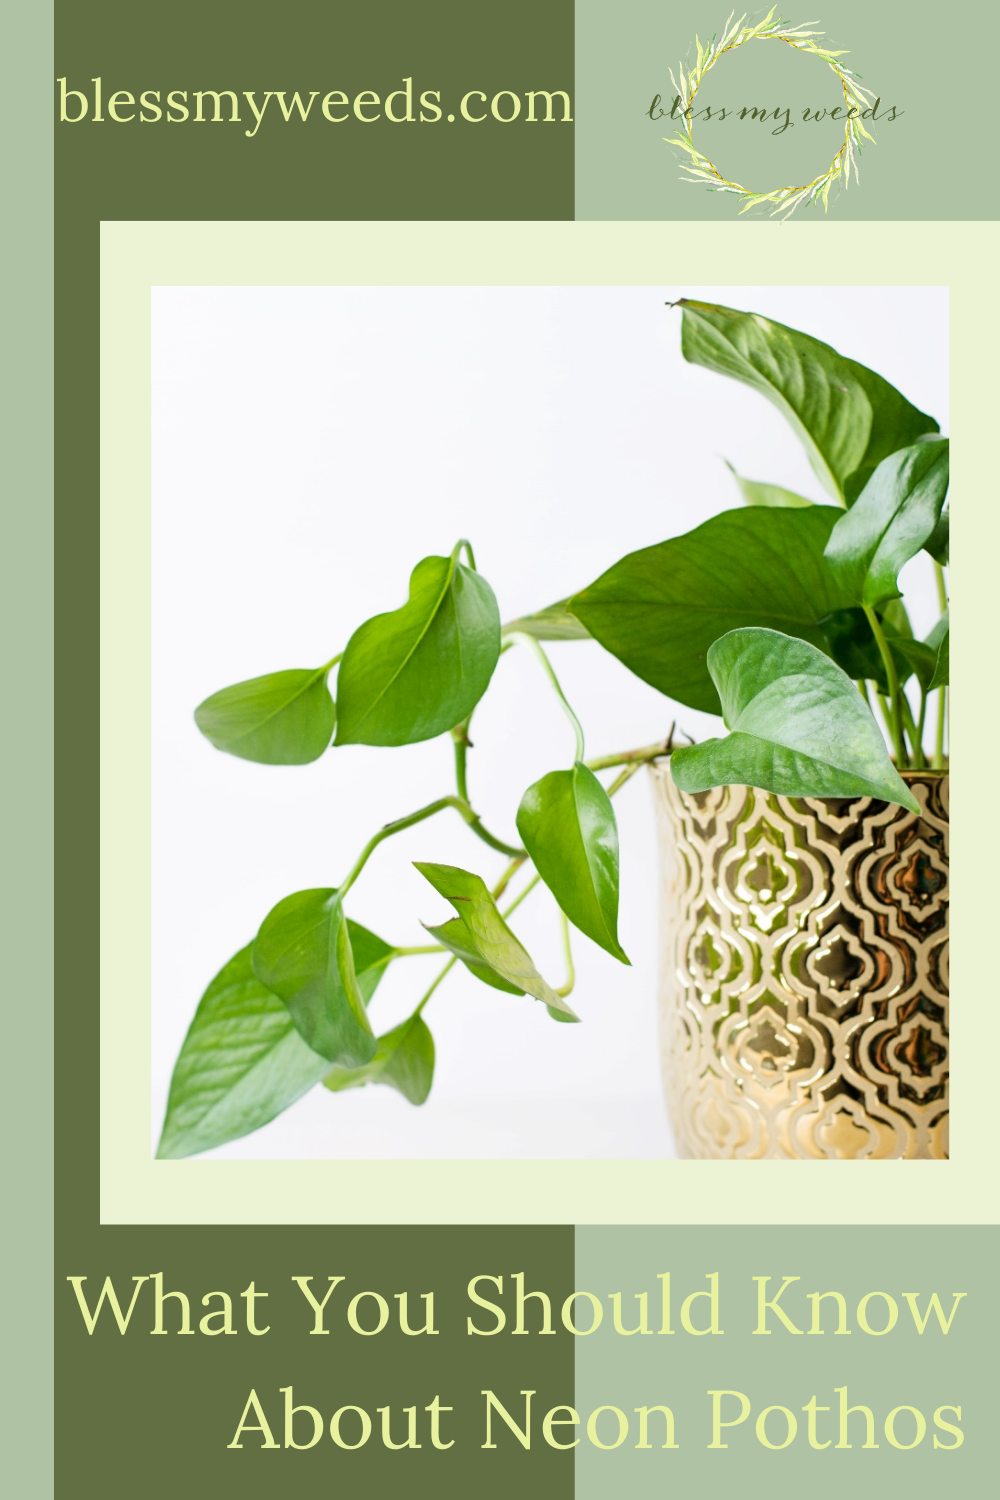 Blessmyweeds.com makes keeping healthy house plants easy for anyone! Learn what to grow and how to care for it. Find out all you need to know to grow happy, healthy neon pothos.